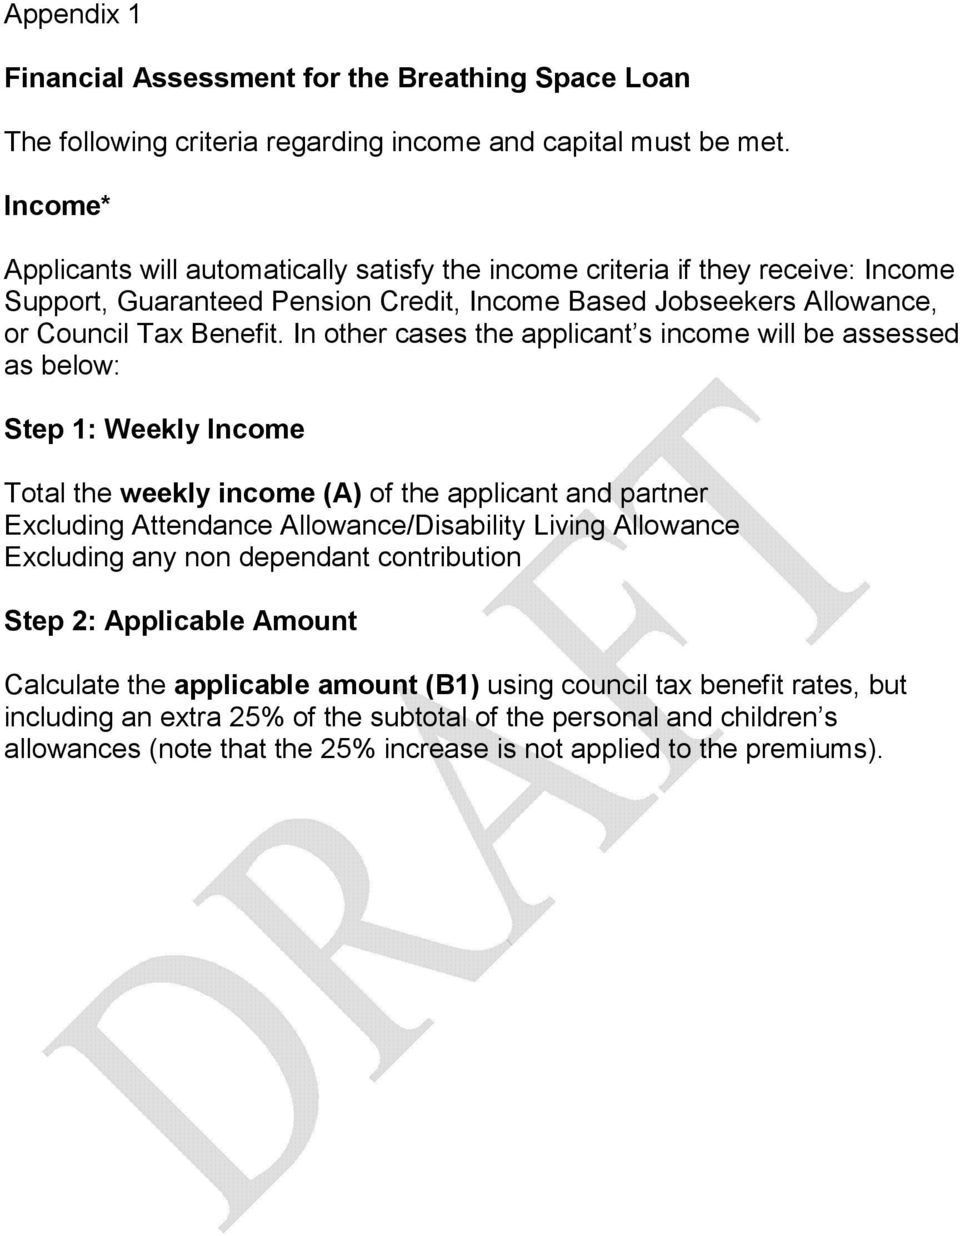 In other cases the applicant s income will be assessed as below: Step 1: Weekly Income Total the weekly income (A) of the applicant and partner Excluding Attendance Allowance/Disability Living